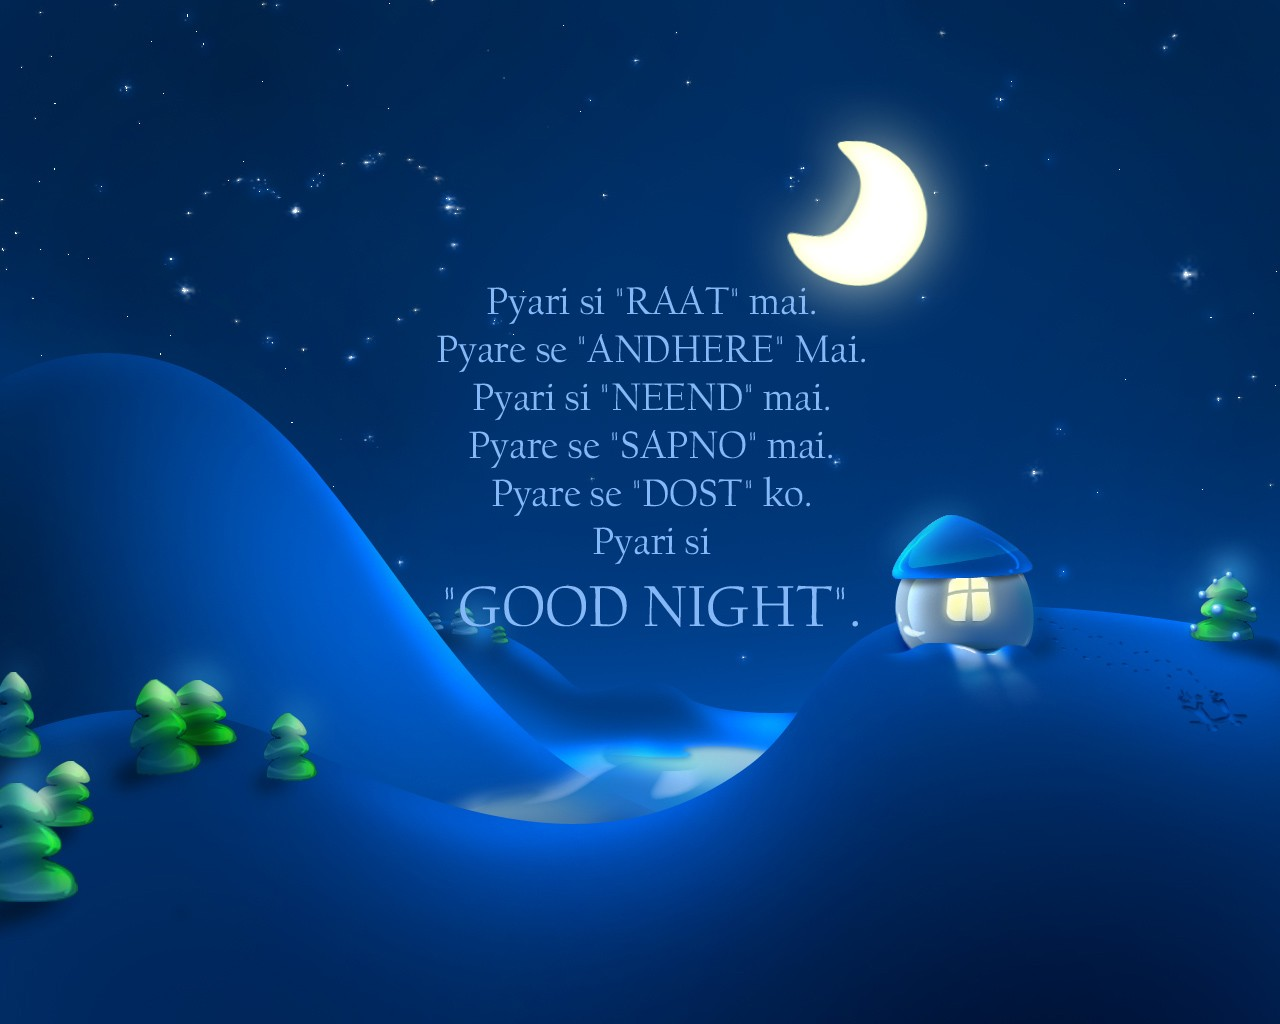 Good Night Wallpaper Love Sms : Fall wallpaper 1920x1080 #36910